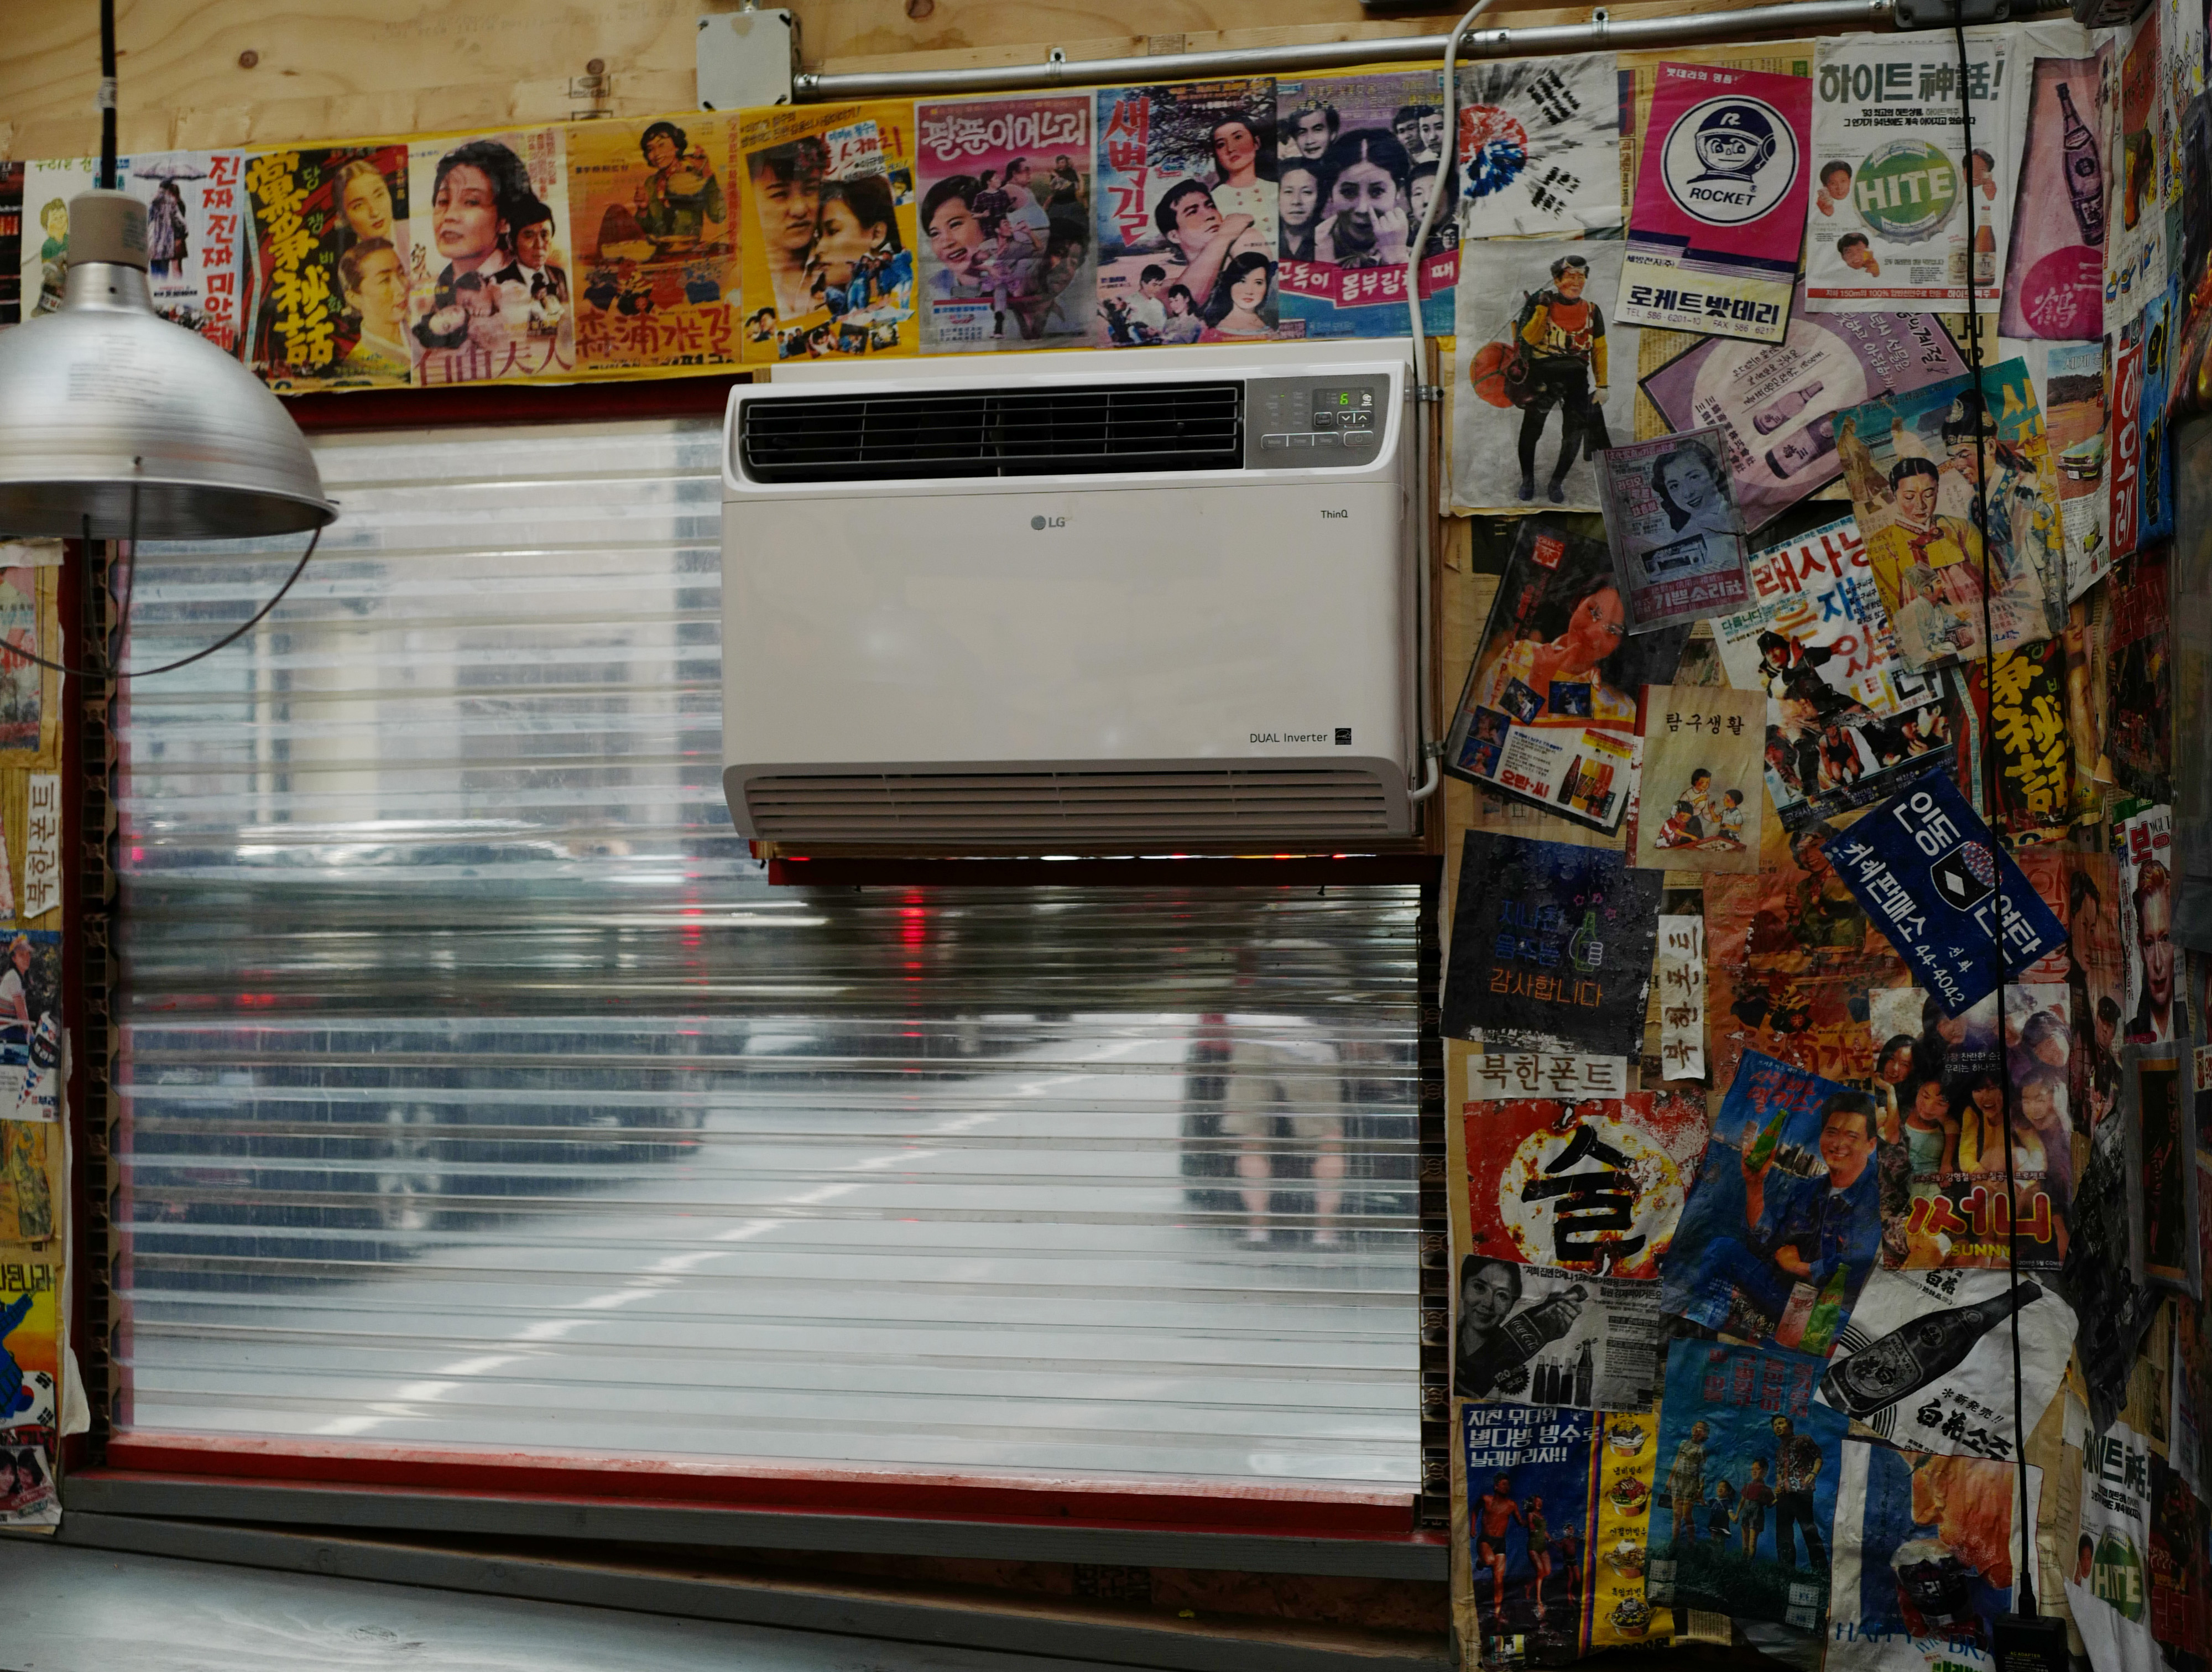 An air conditioning unit is installed in a plastic window. Vintage posters are pasted to the wall around it.